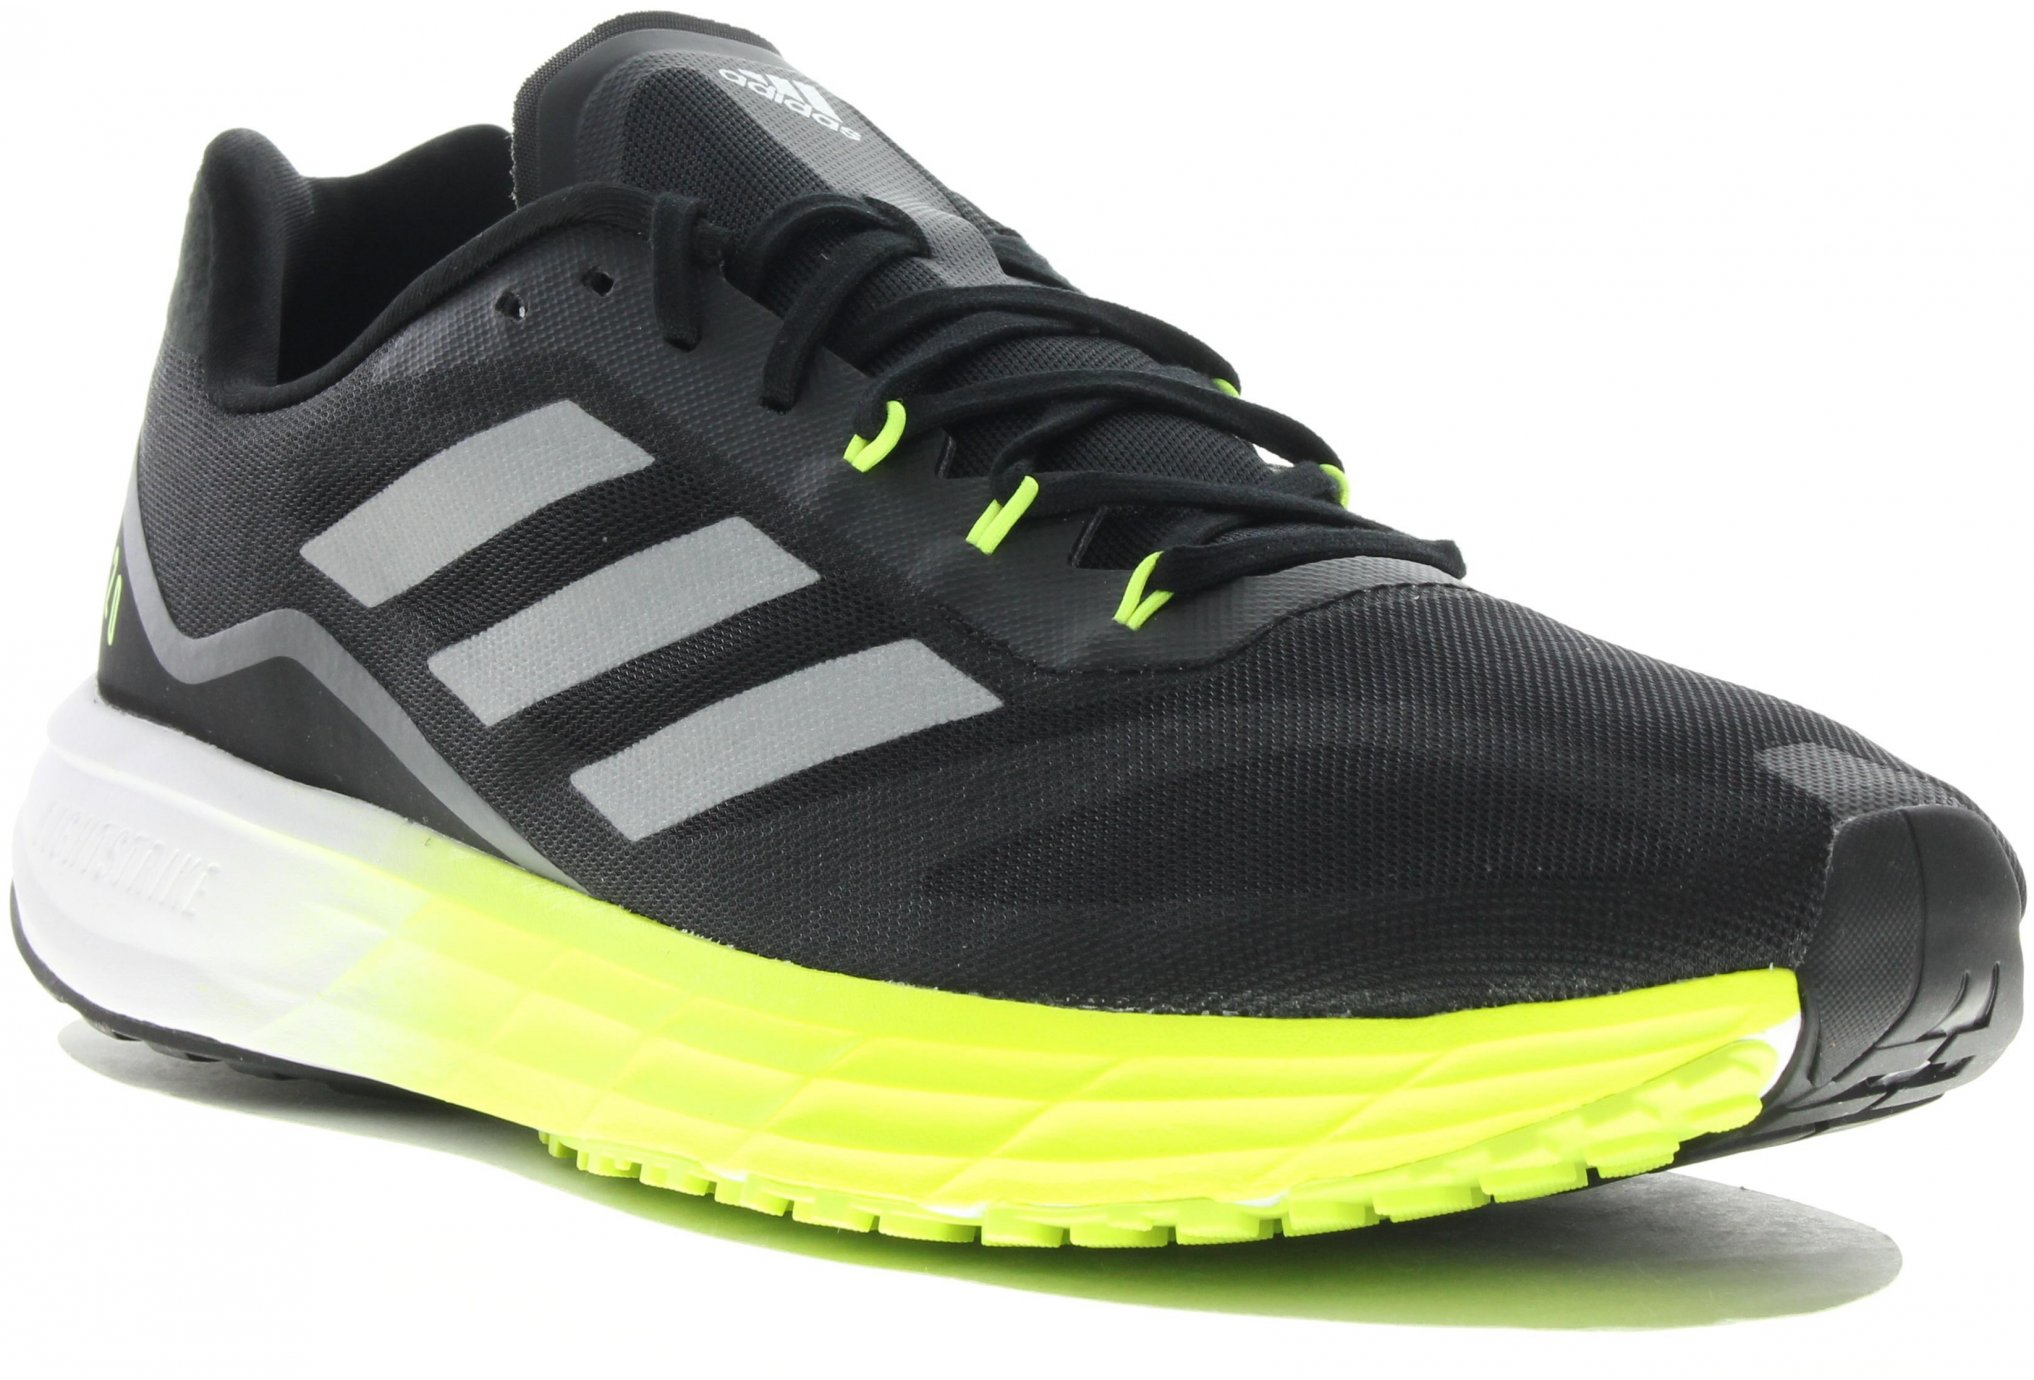 adidas SL20.2 Chaussures homme